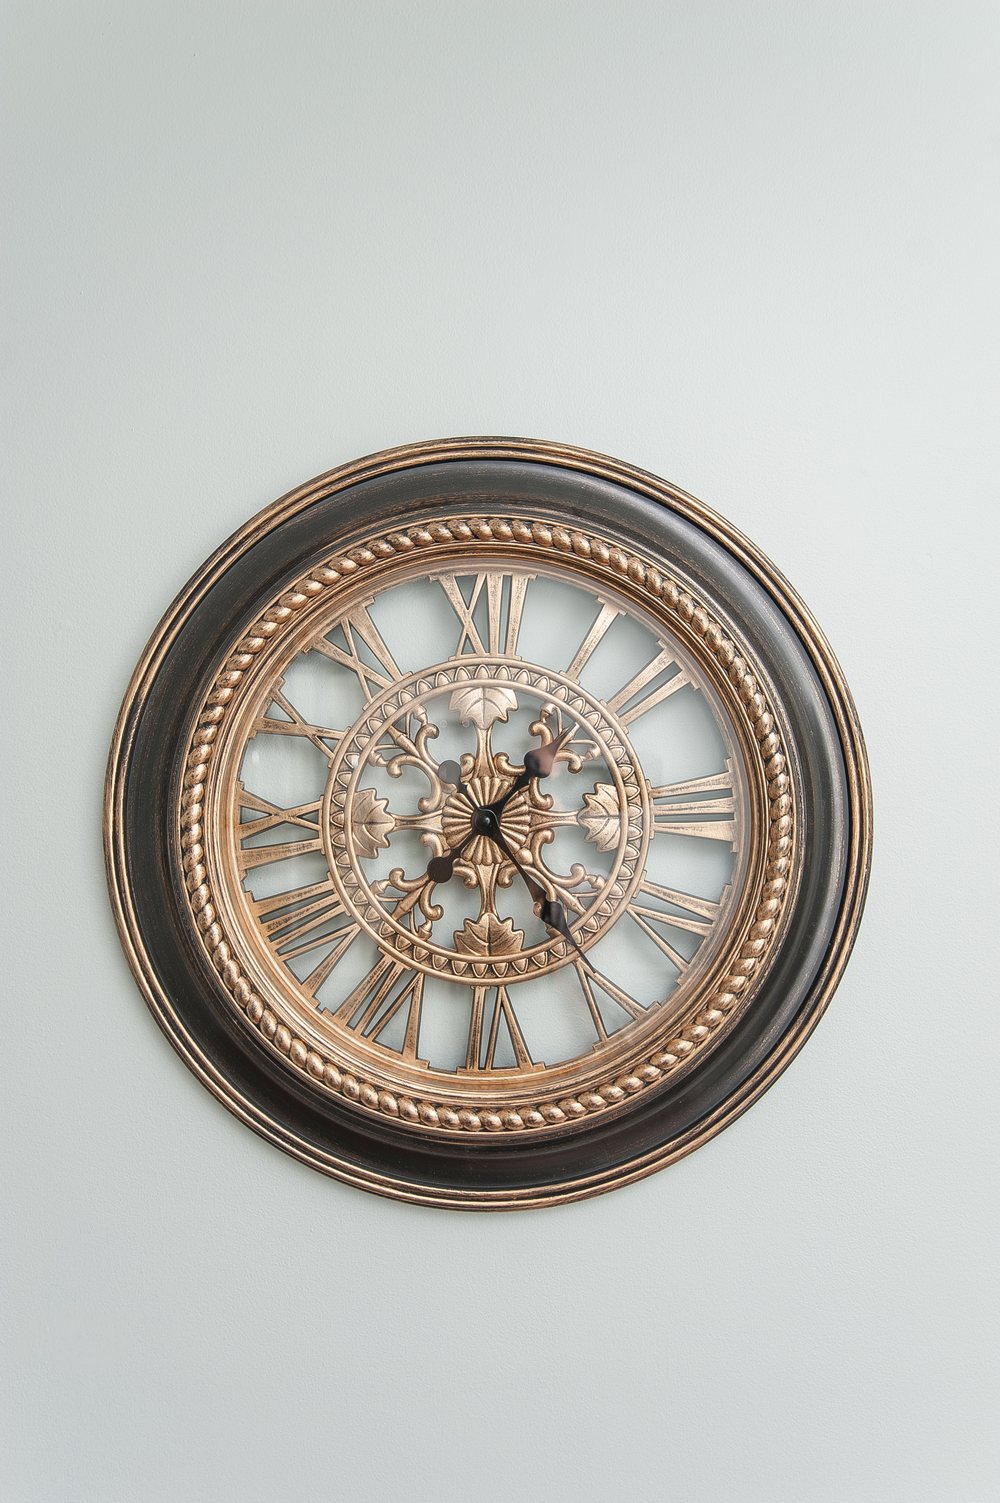 Artful Interiors – Bachelor Pad - Dining Room Clock